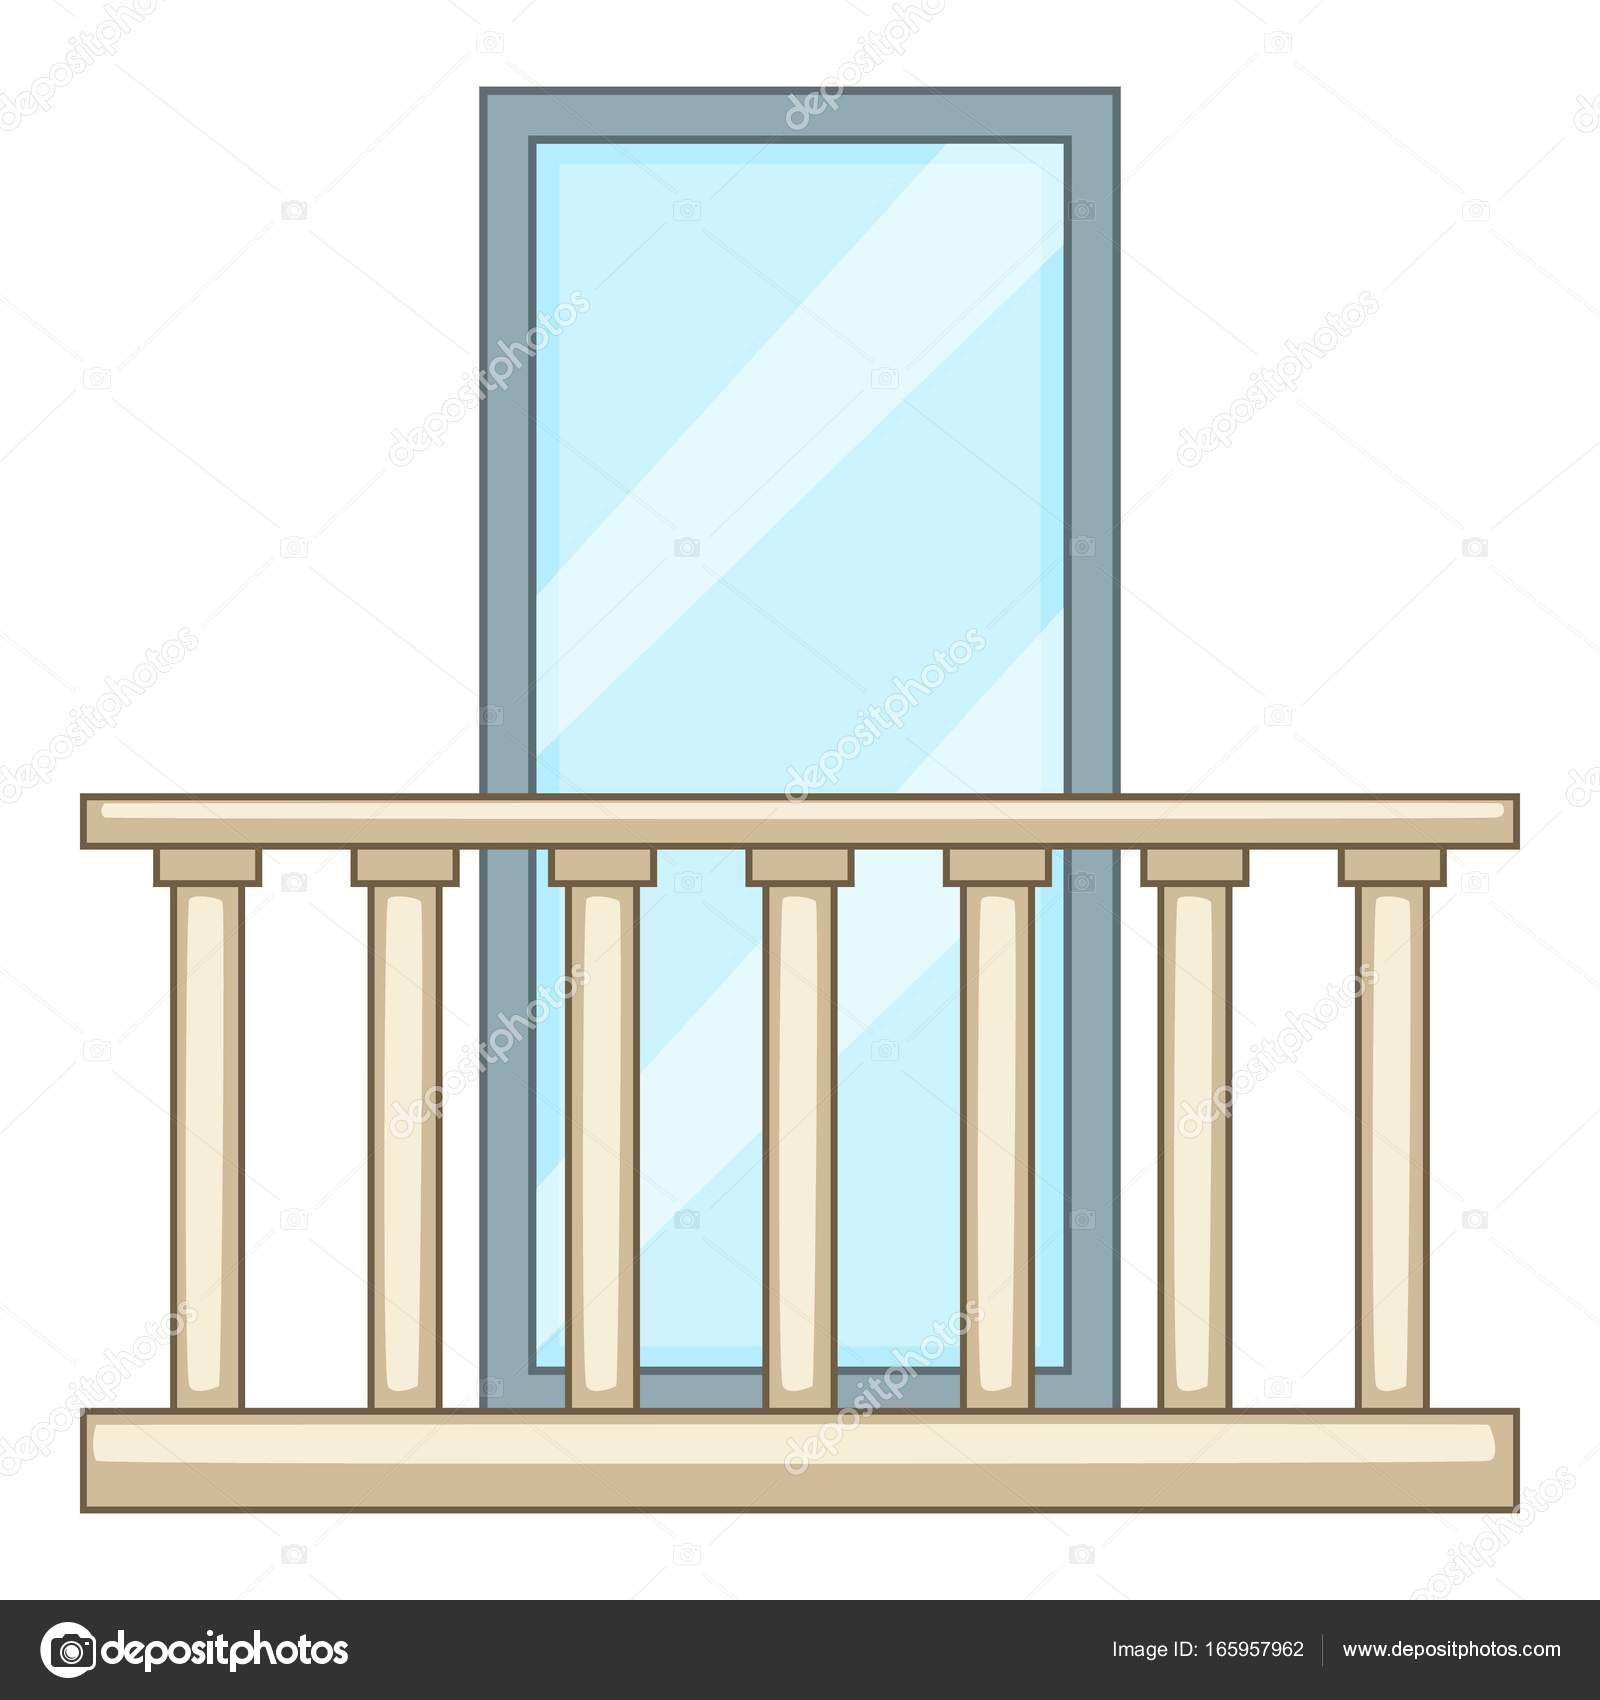 Concrete balcony icon cartoon style stock vector for Balcony cartoon